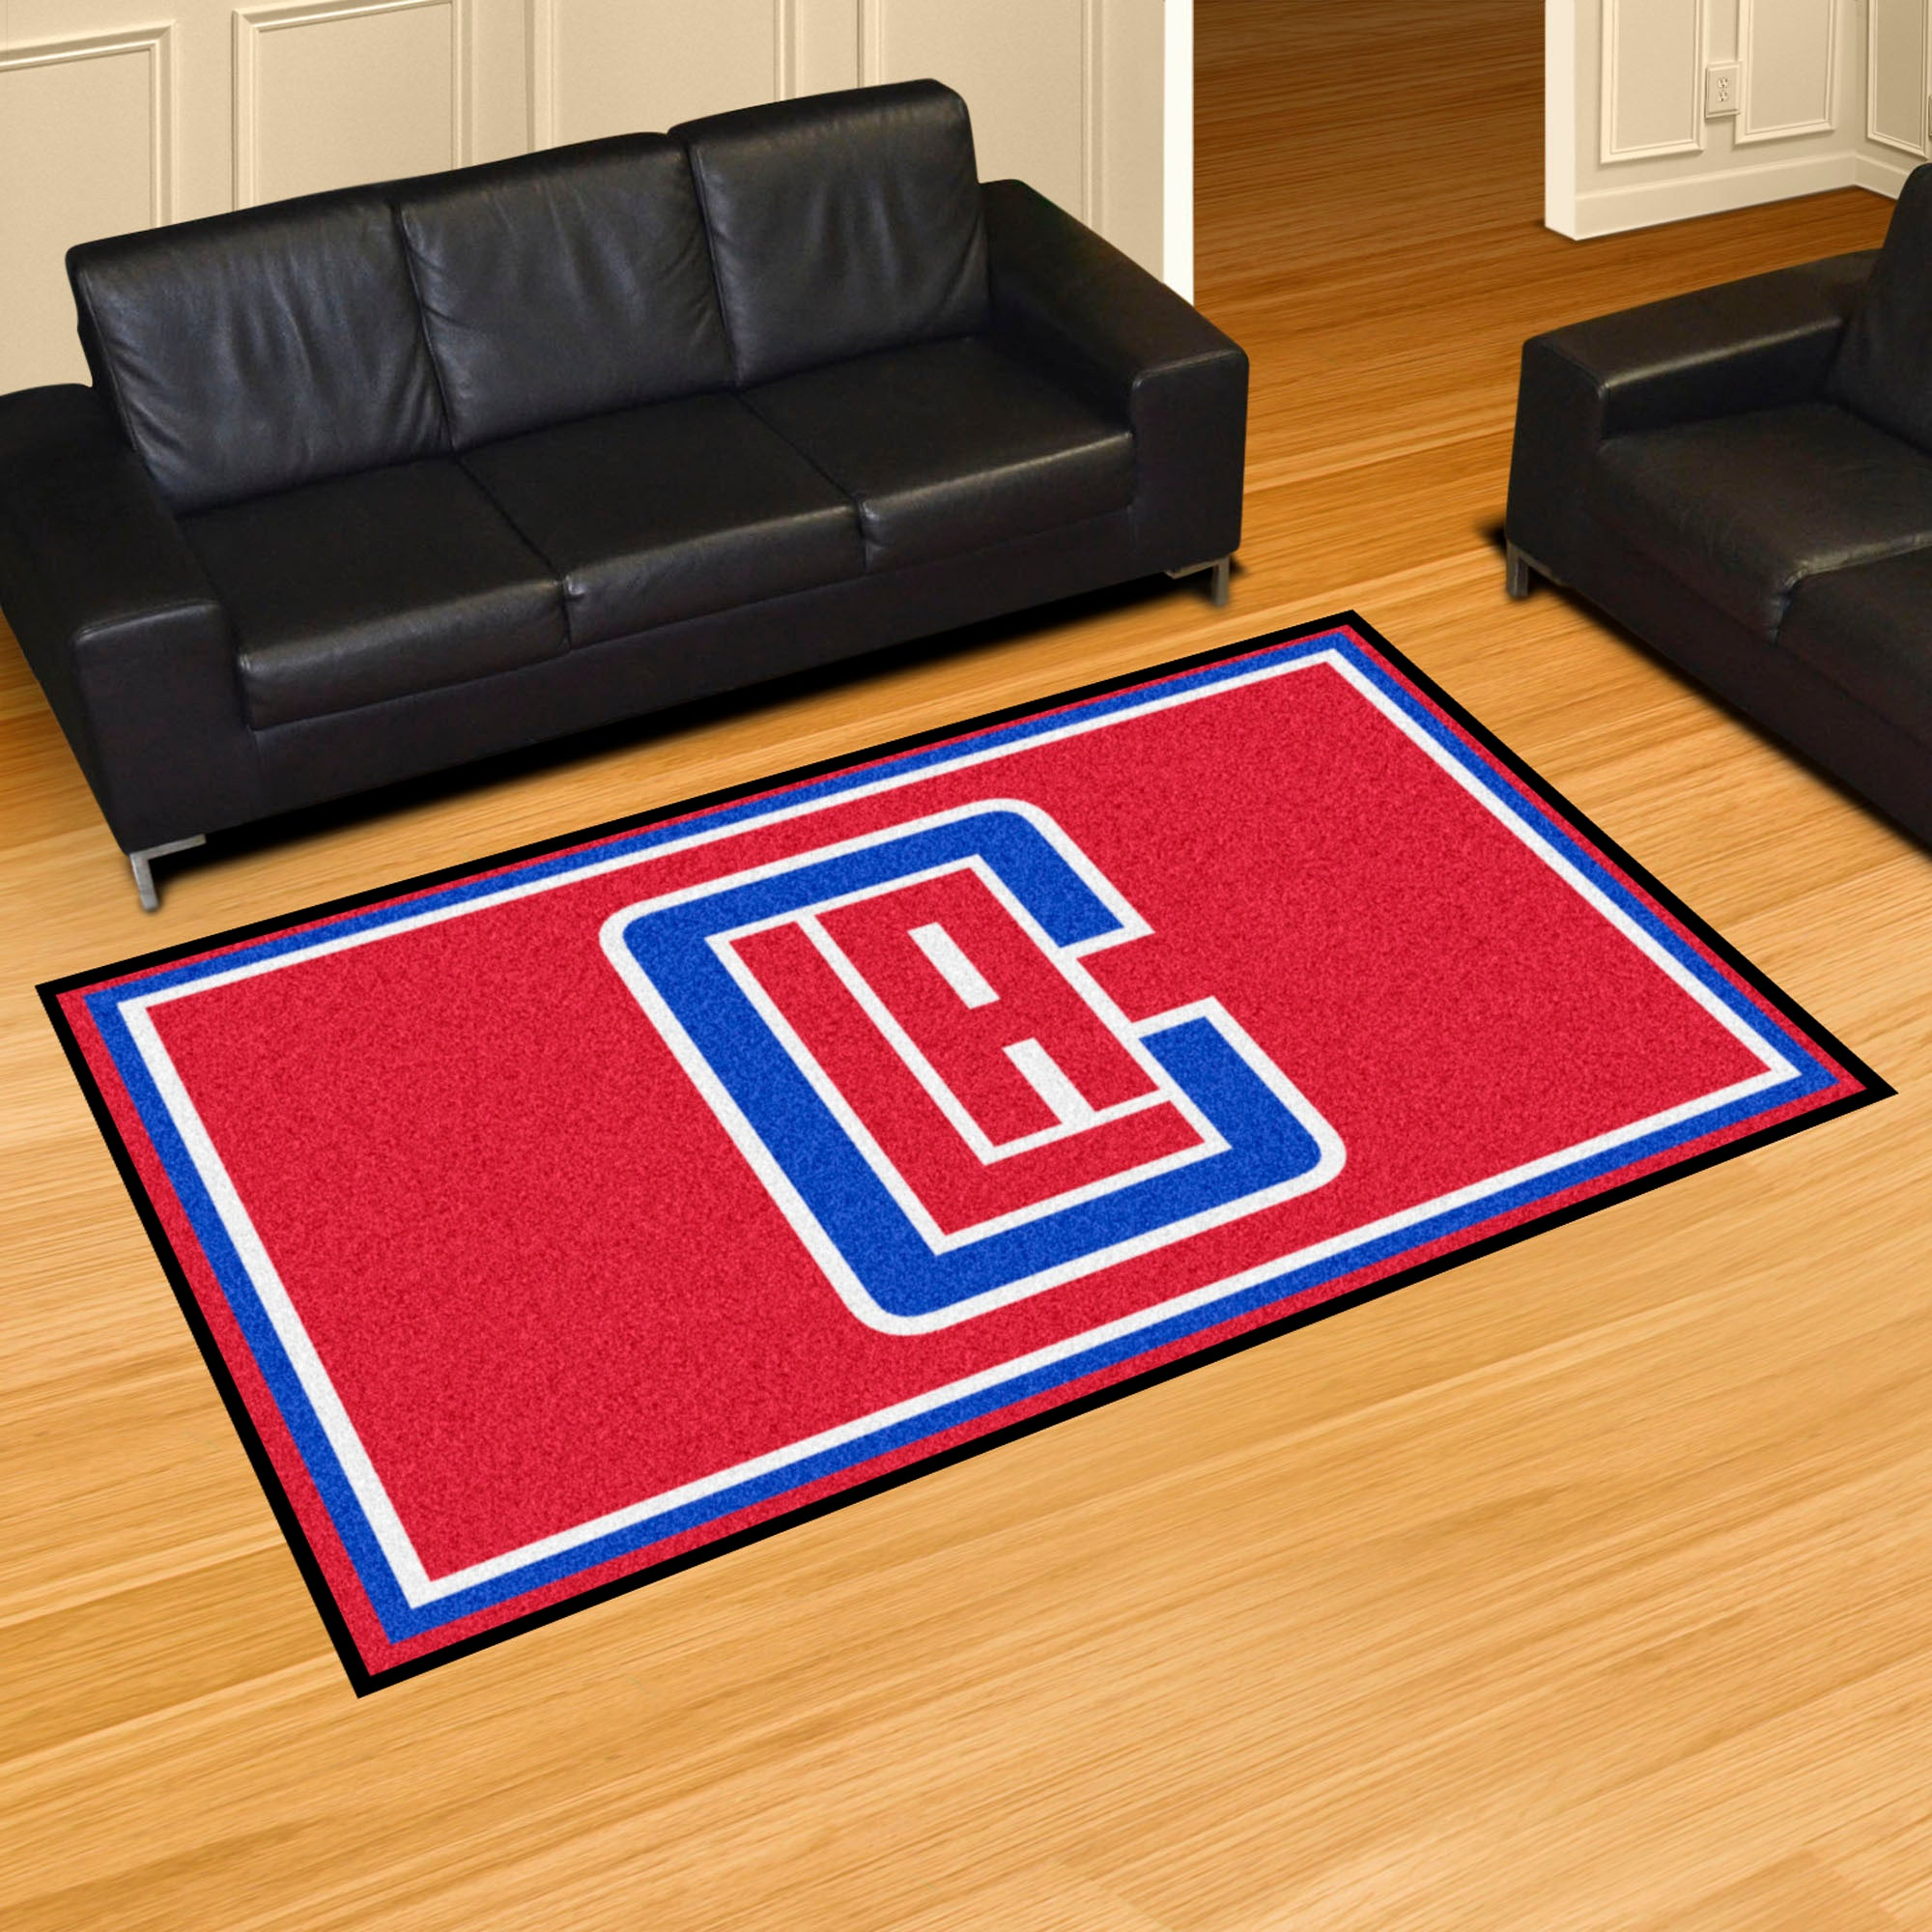 Los Angeles Clippers Rug  NBA Area Rug - Fan Rugs